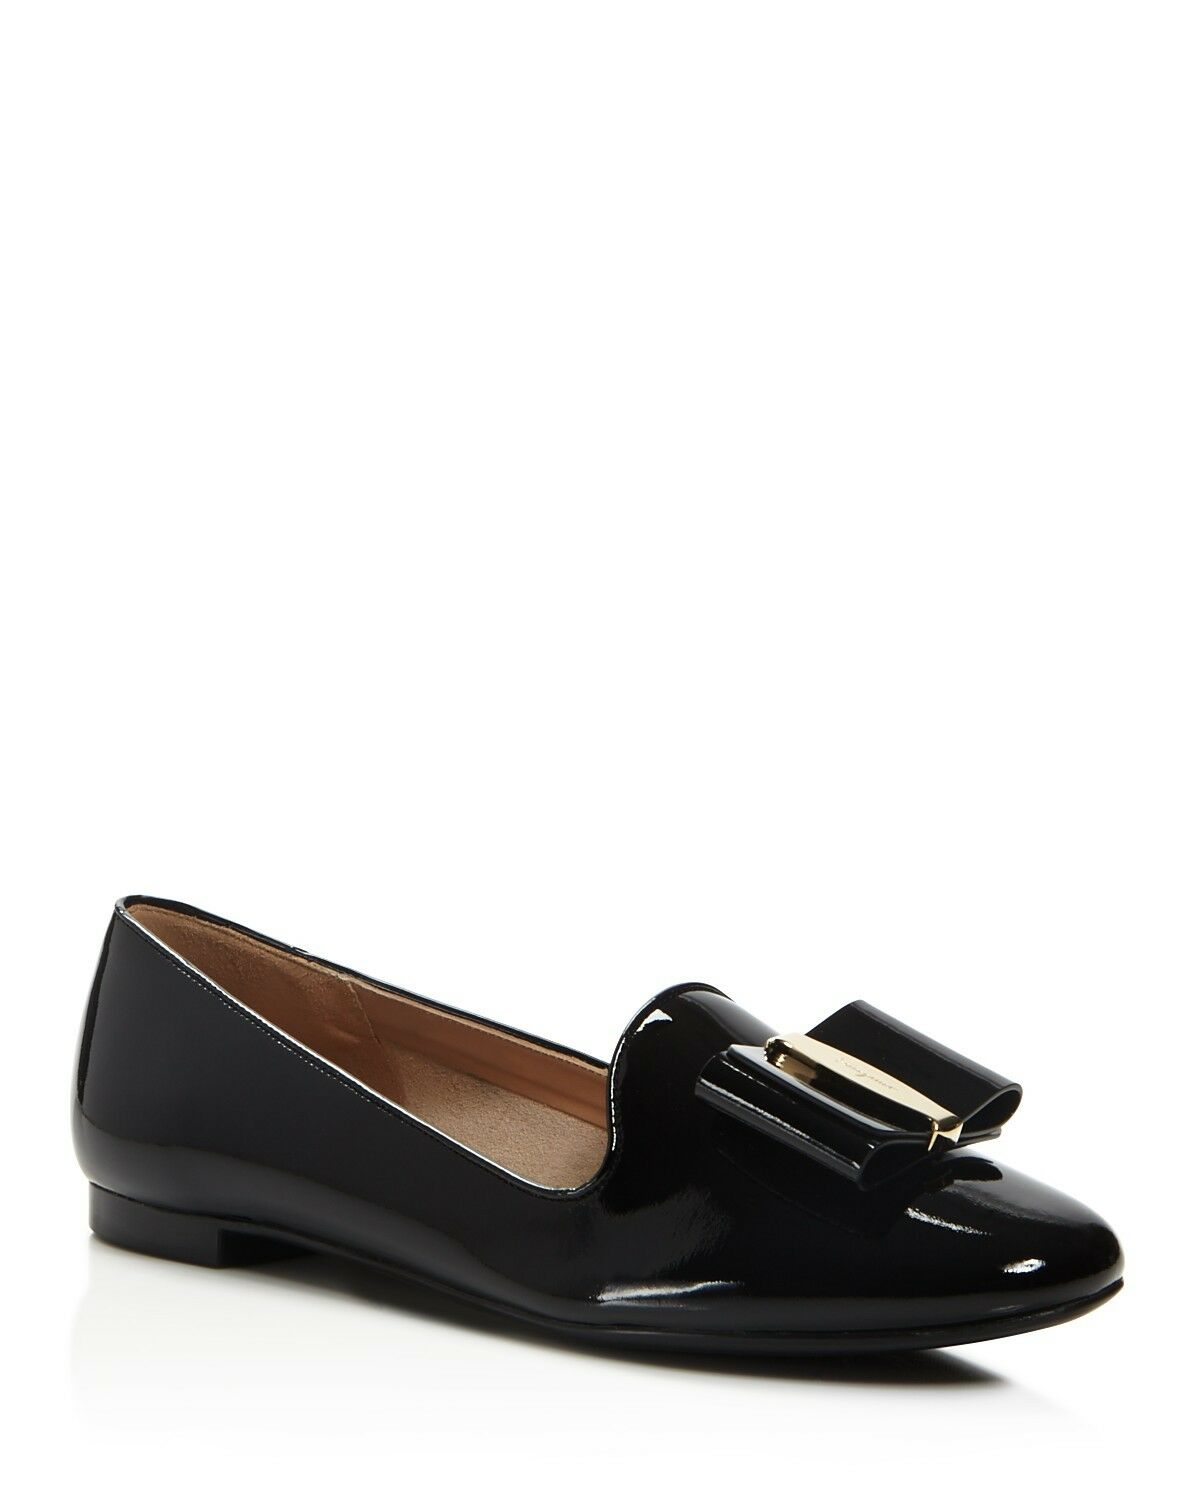 NIB NEW Salvatore Ferragamo Elisabel black blue blue black patent flats shoes 6 7 8.5 9 9.5 52229b